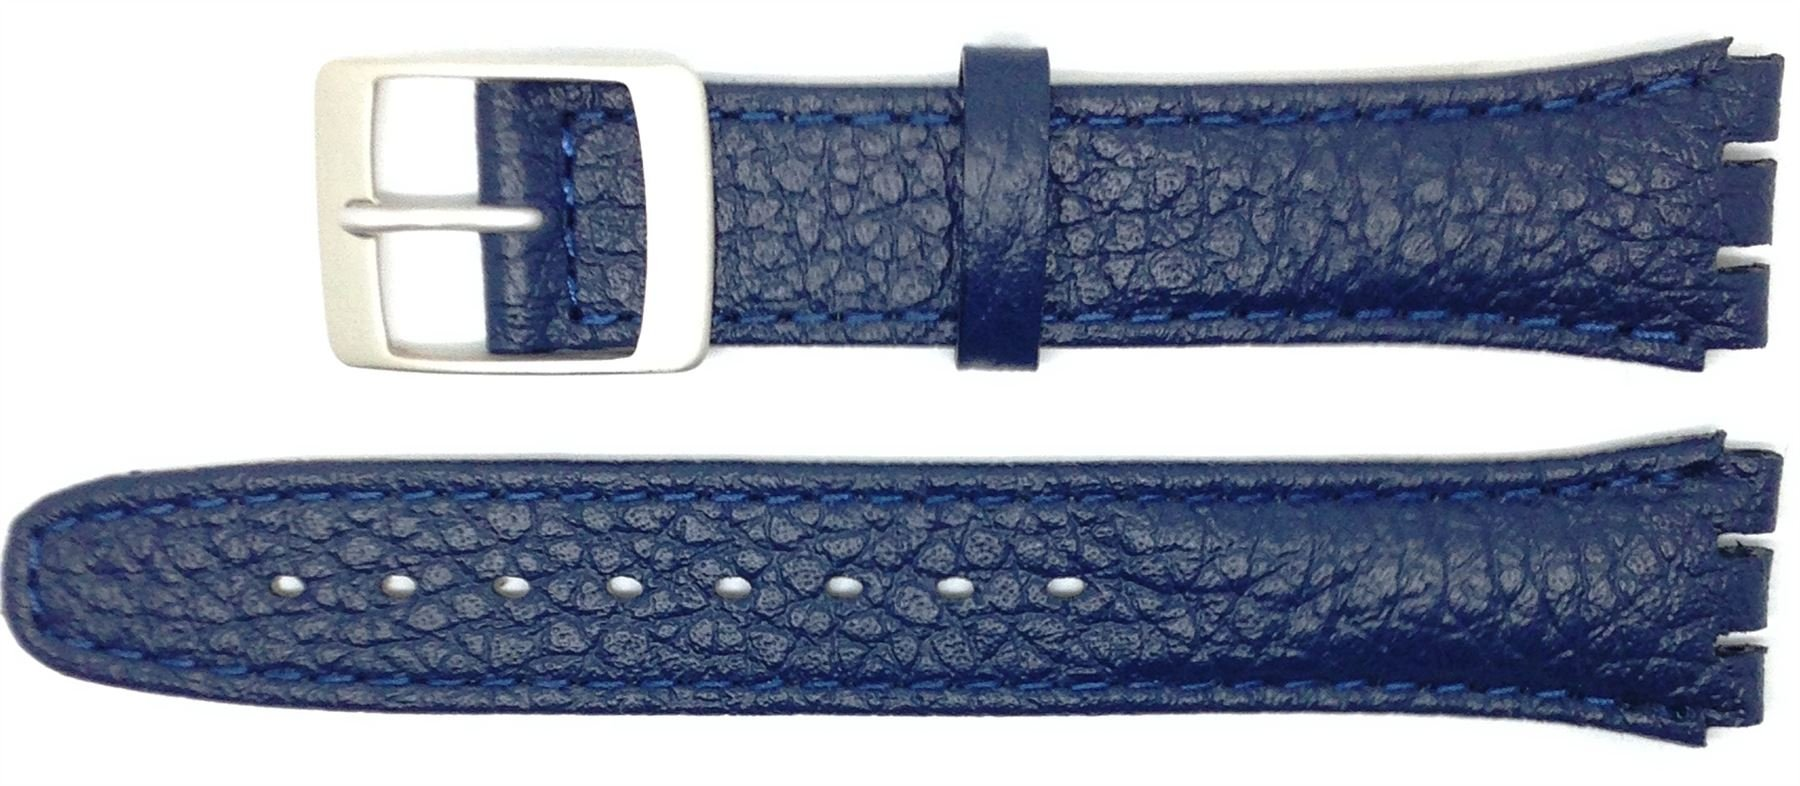 New 17mm (20mm) Sized Genuine Leather Strap Compatible for Swatch Watch - Ink Blue - 400JJ20